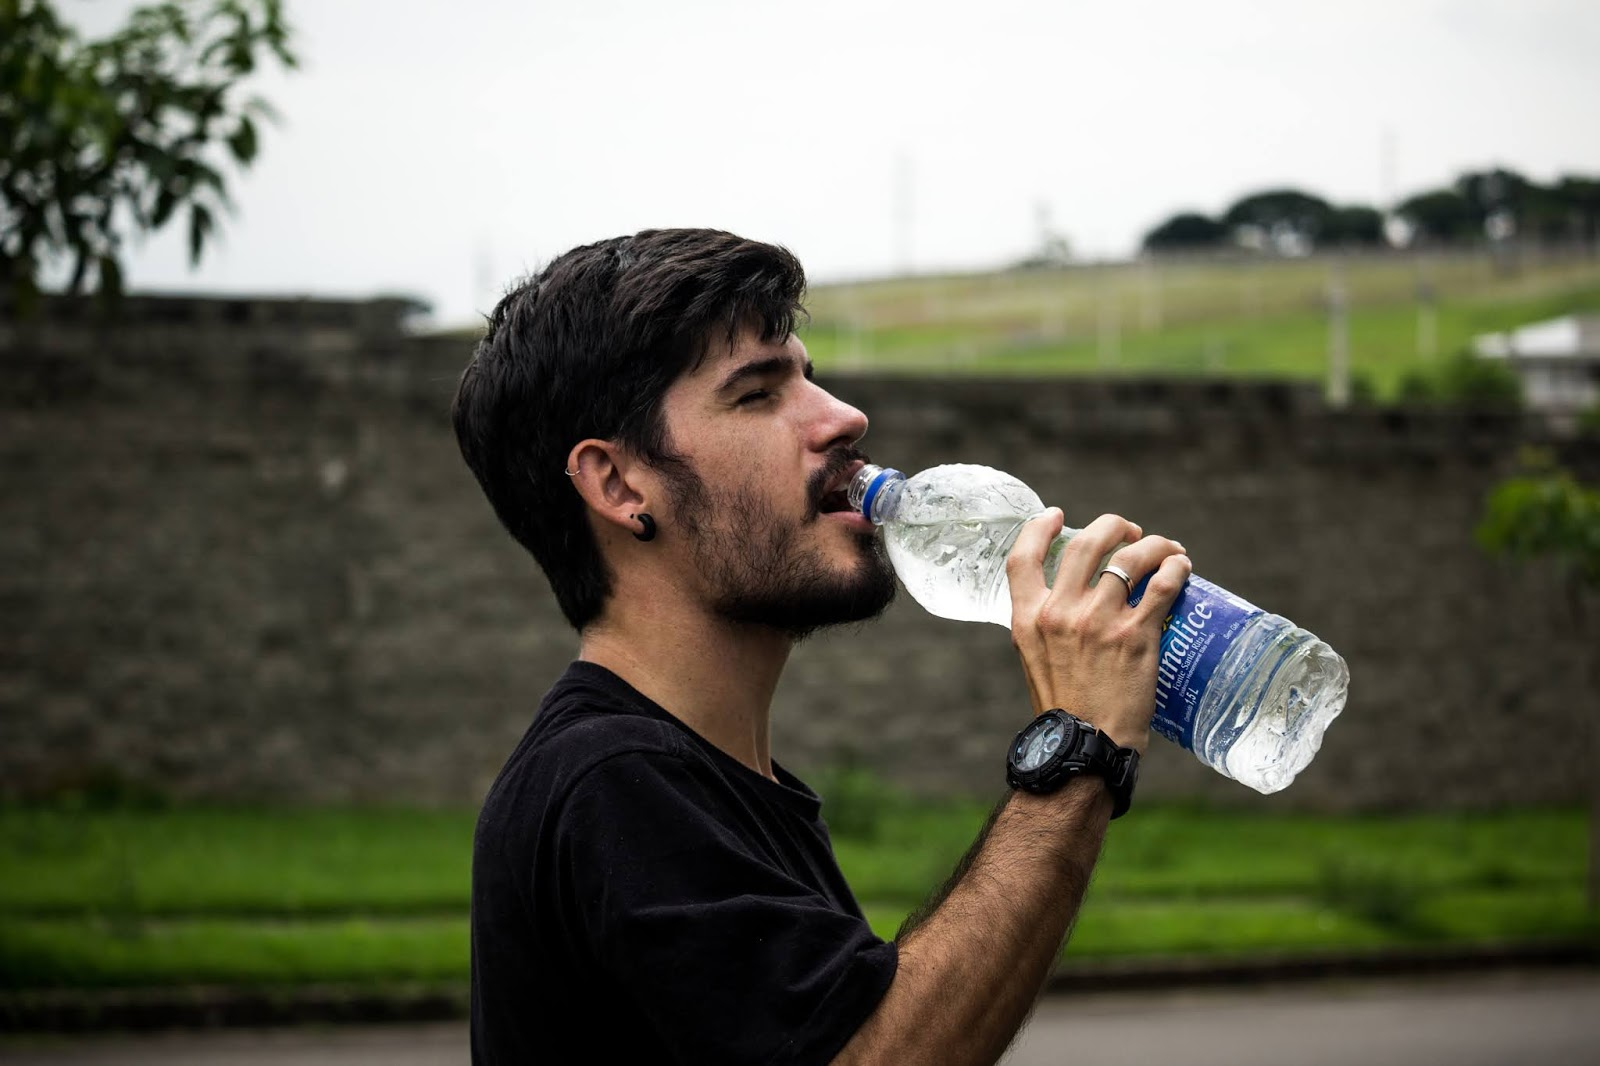 5 Non-negotiable Tips for Healthy Mental and Physical Well-Being - Drink Water